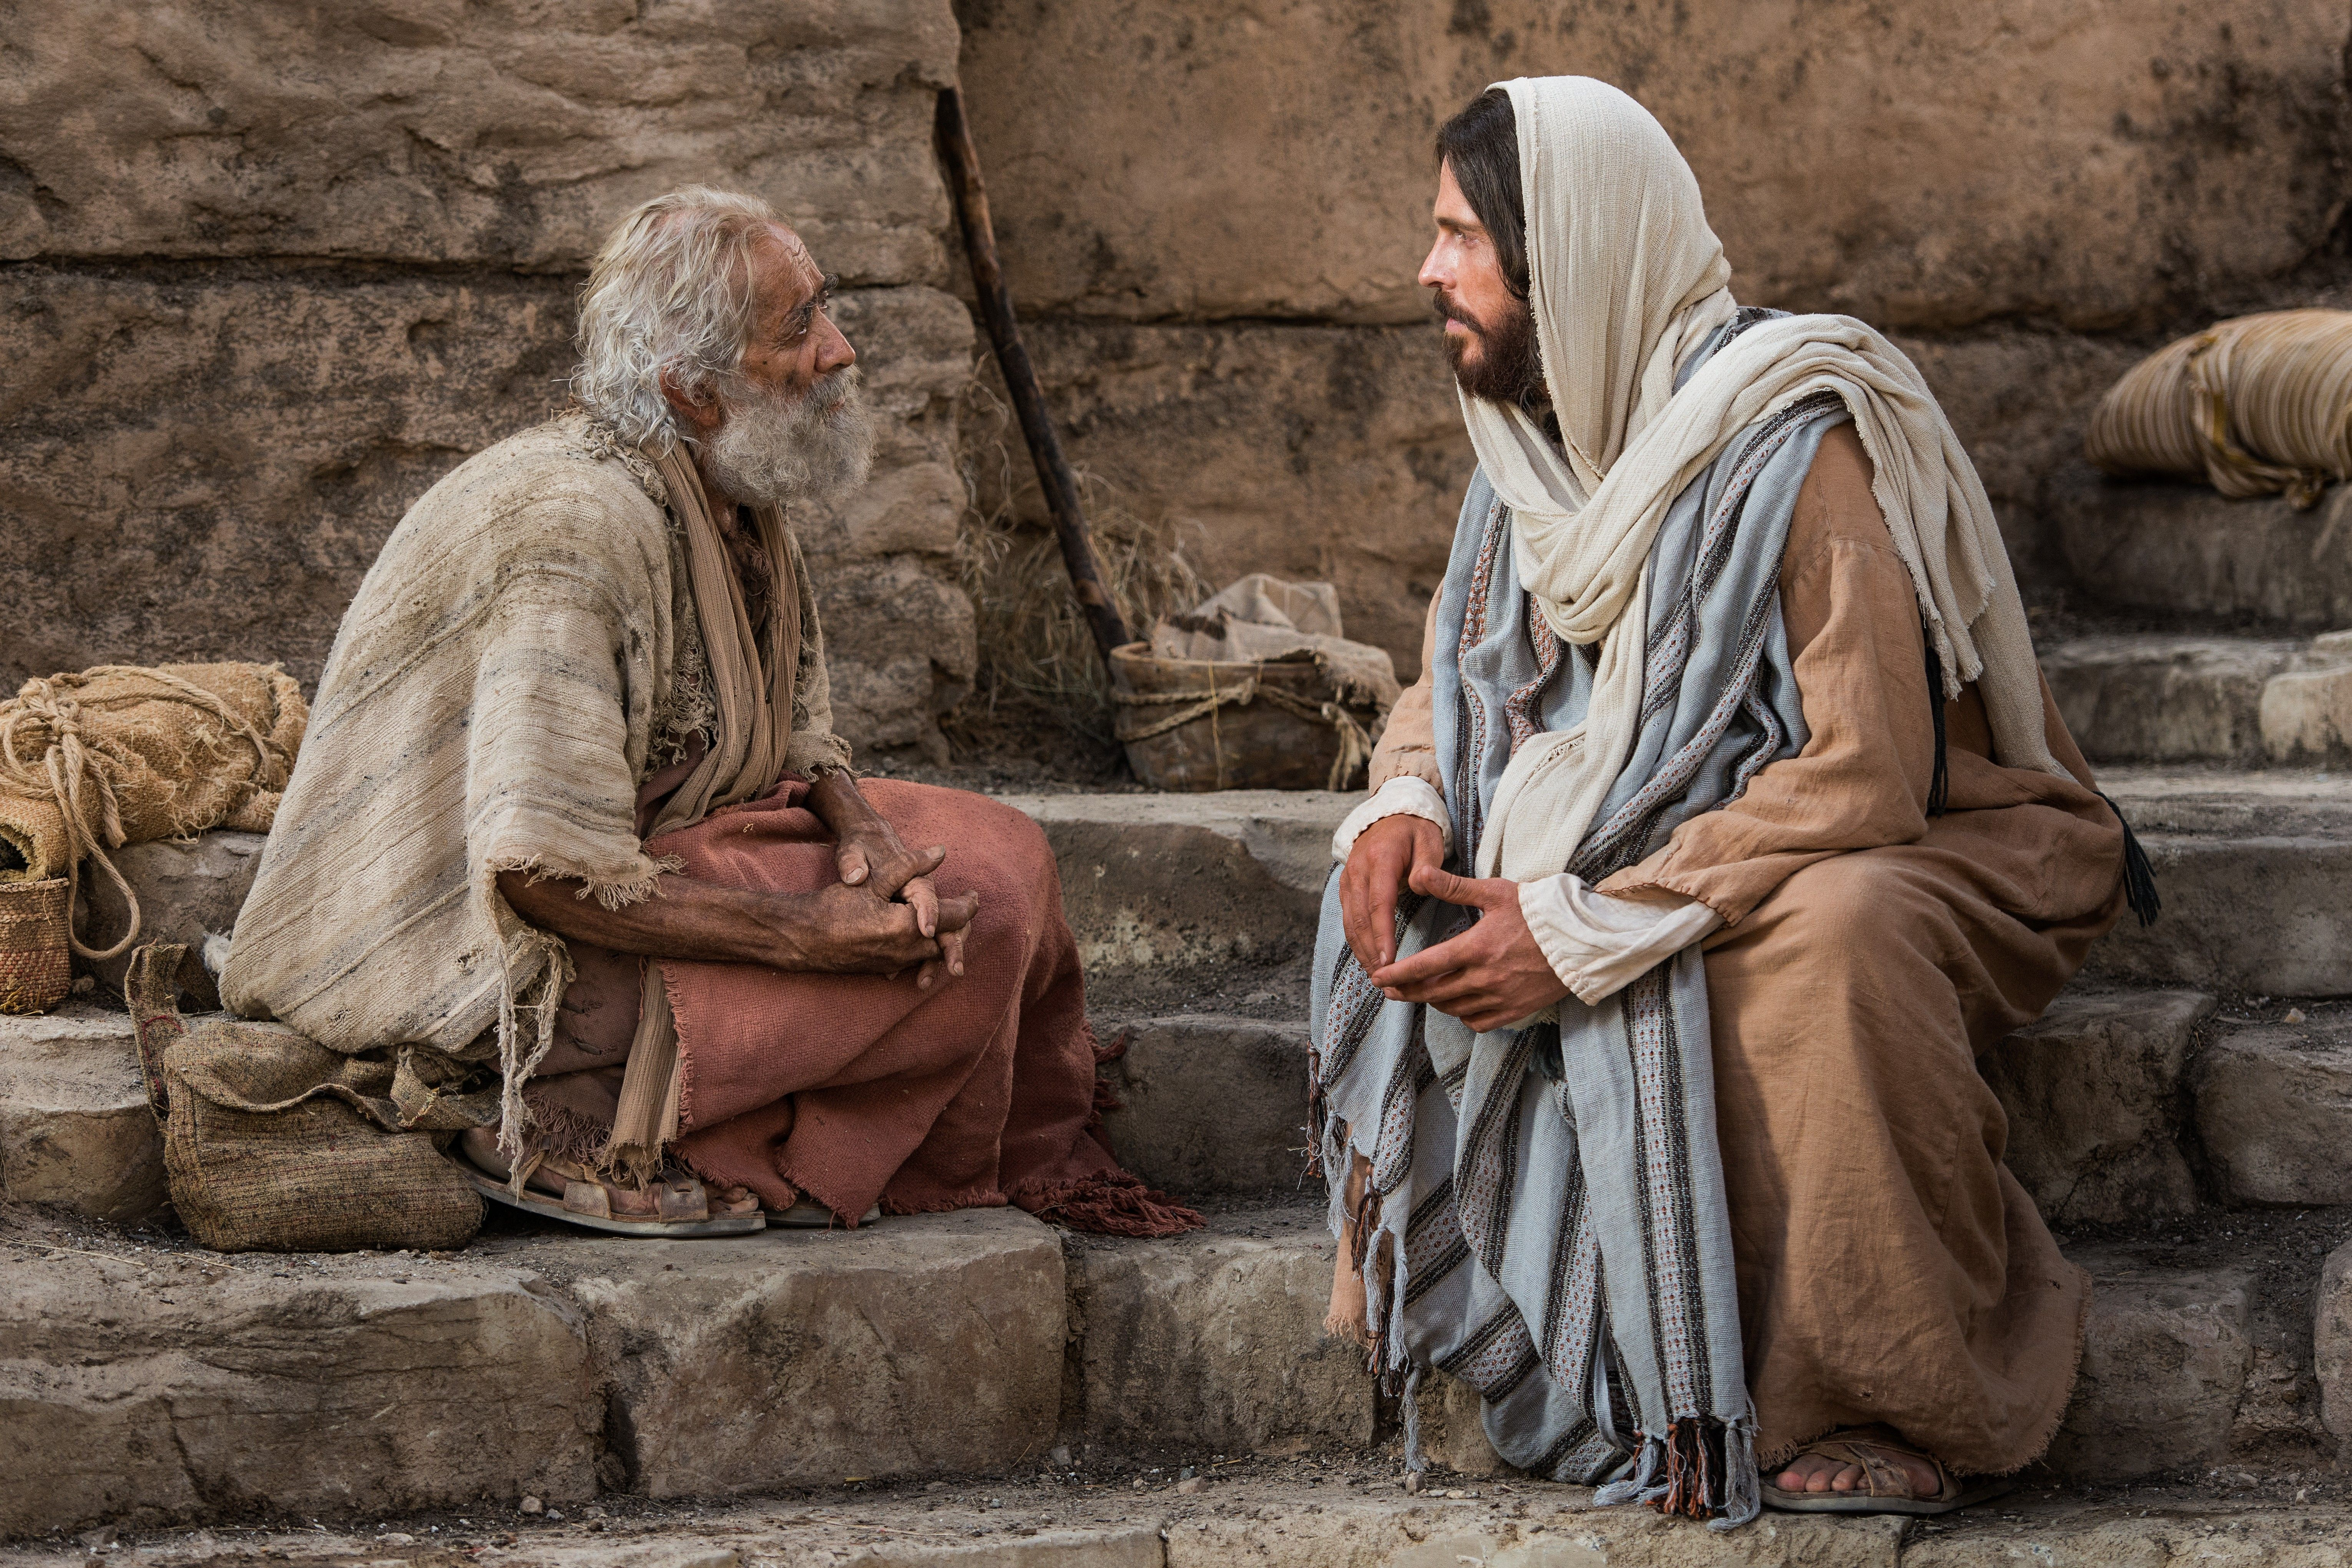 Jesus speaks to a lame man who wants to enter the pool of Bethesda to be healed.